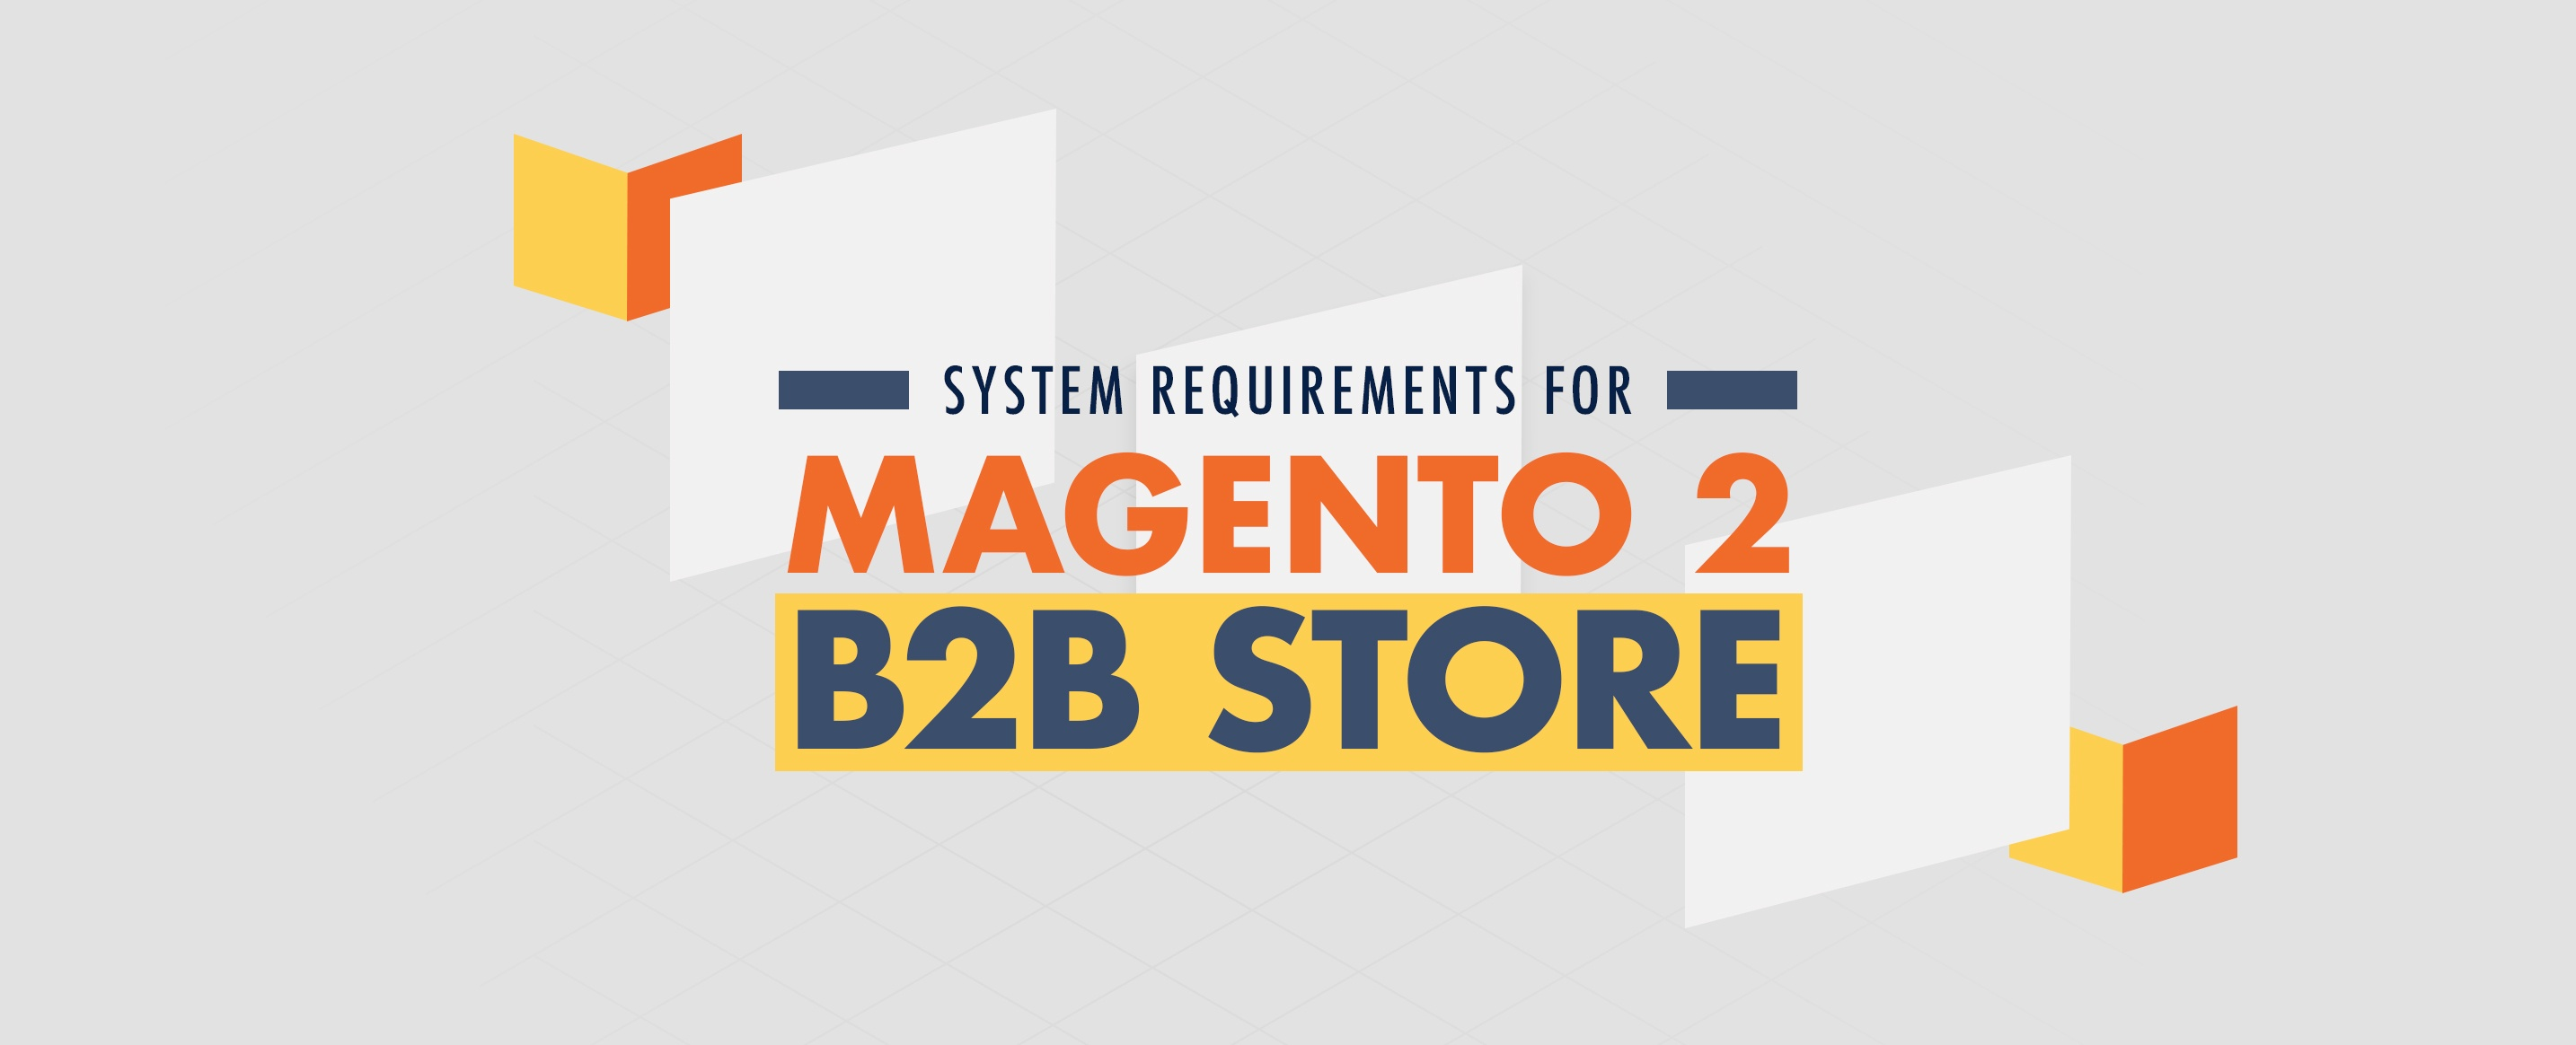 System-Requirements-for-Magento-2-B2B-Store